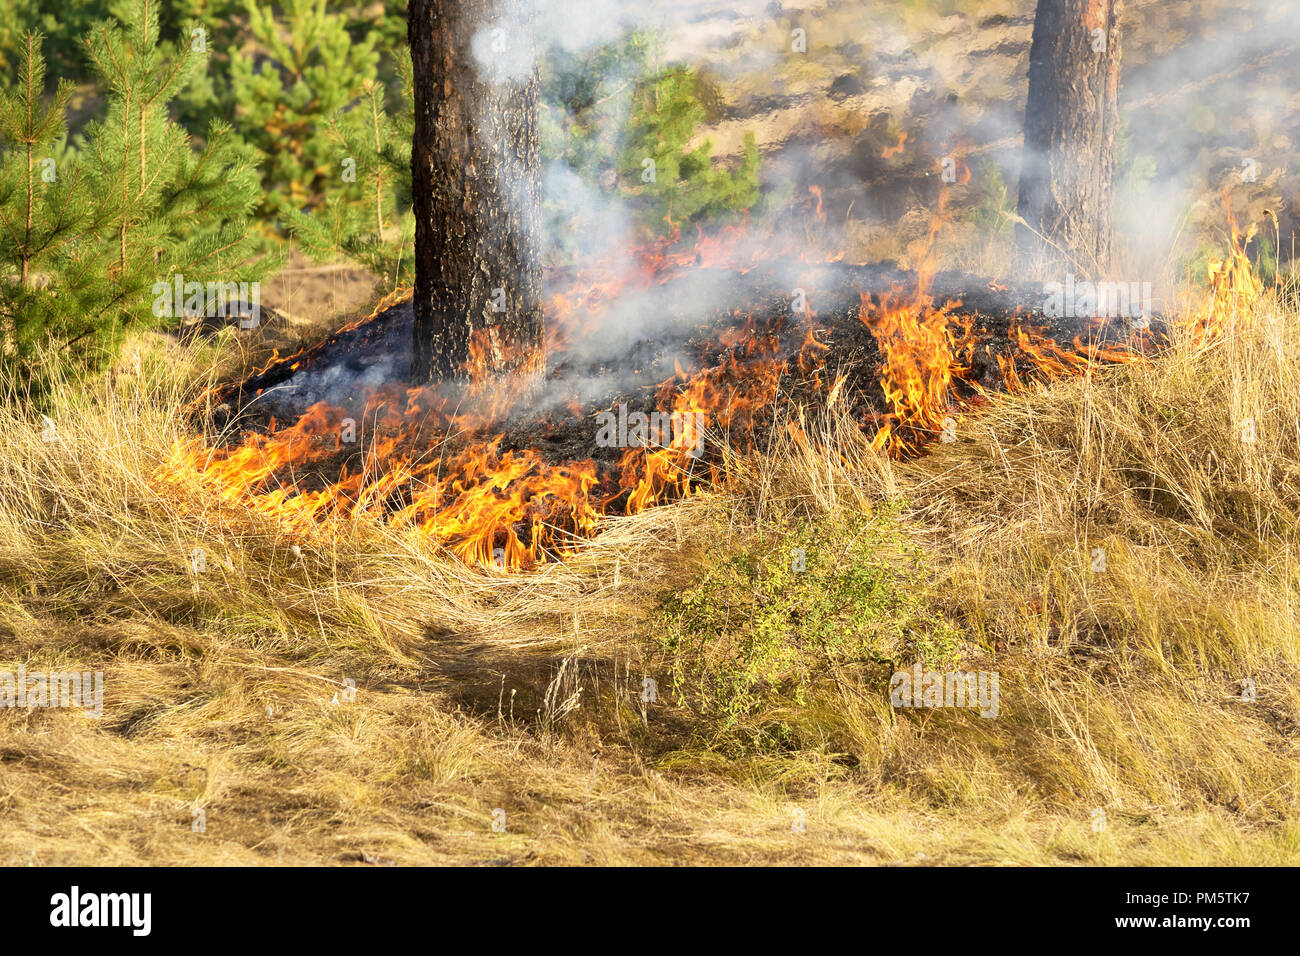 Fire in the forest in the hot summer - Stock Image